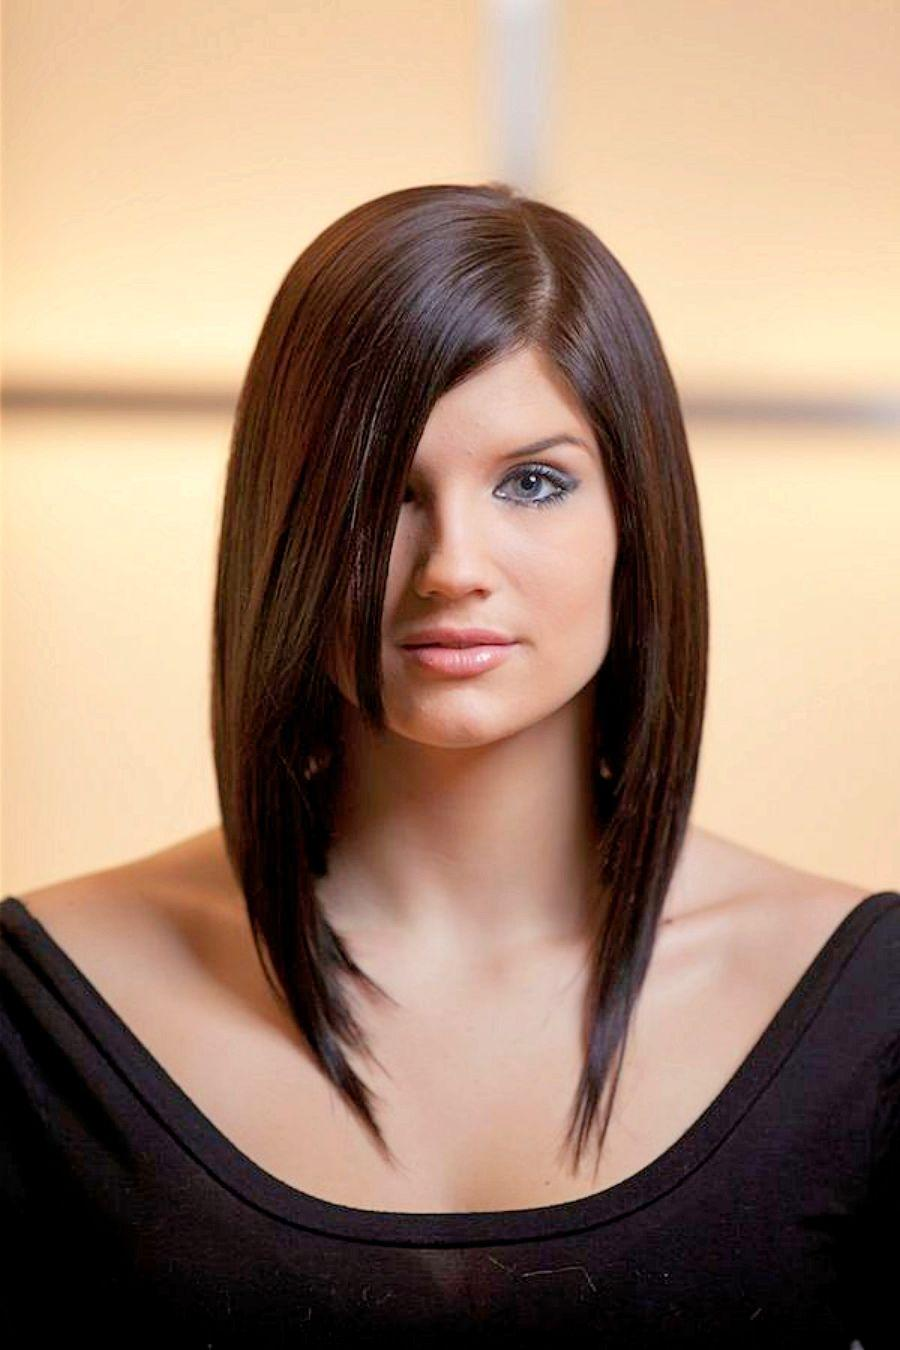 womens mid length haircuts 10 amazing and different mid length haircuts you will 5088 | 432